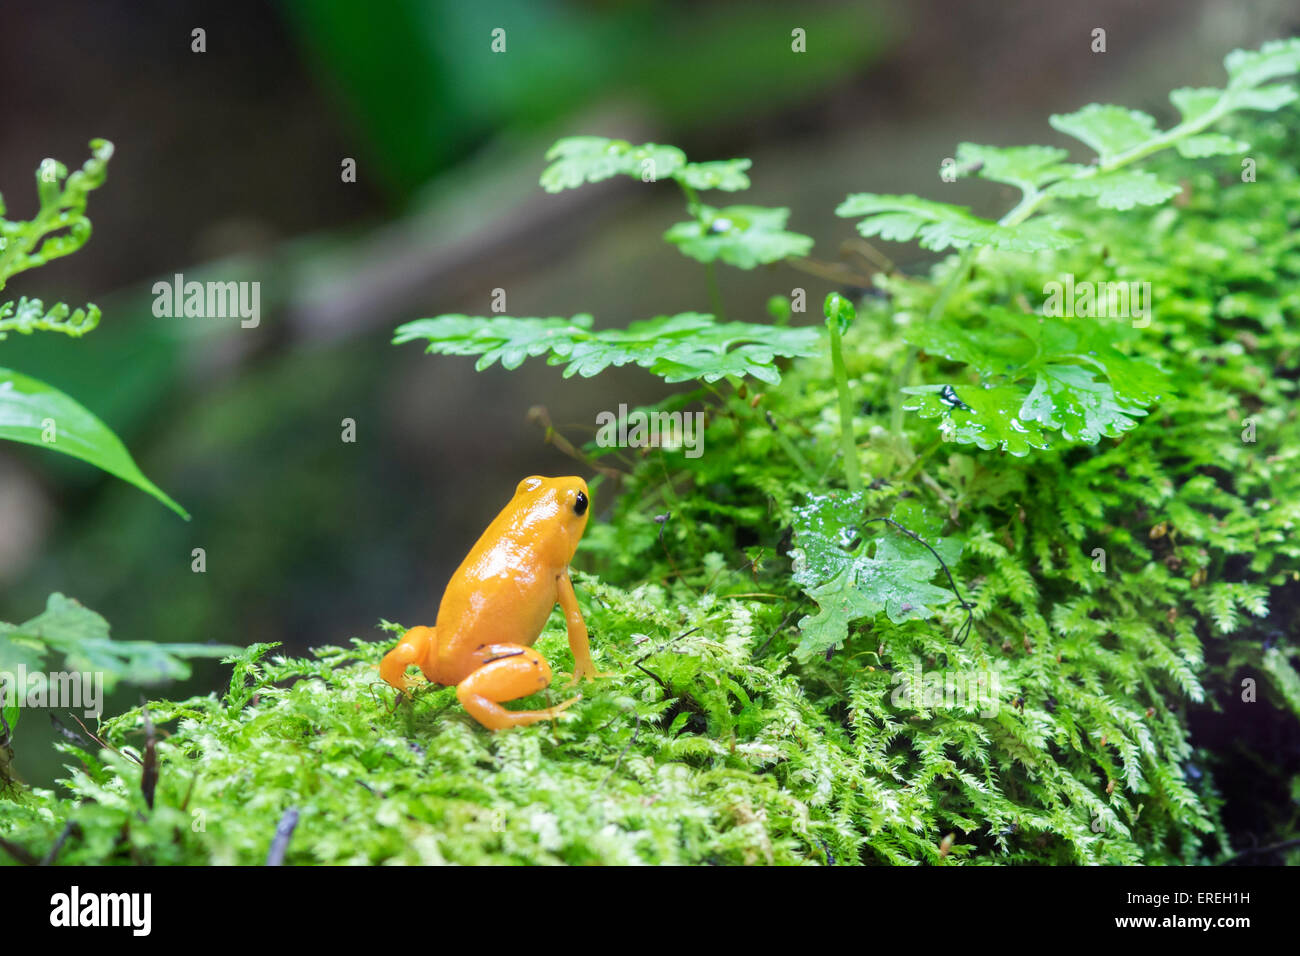 Golden Poison Dart Frog Stock Photos Golden Poison Dart Frog Stock